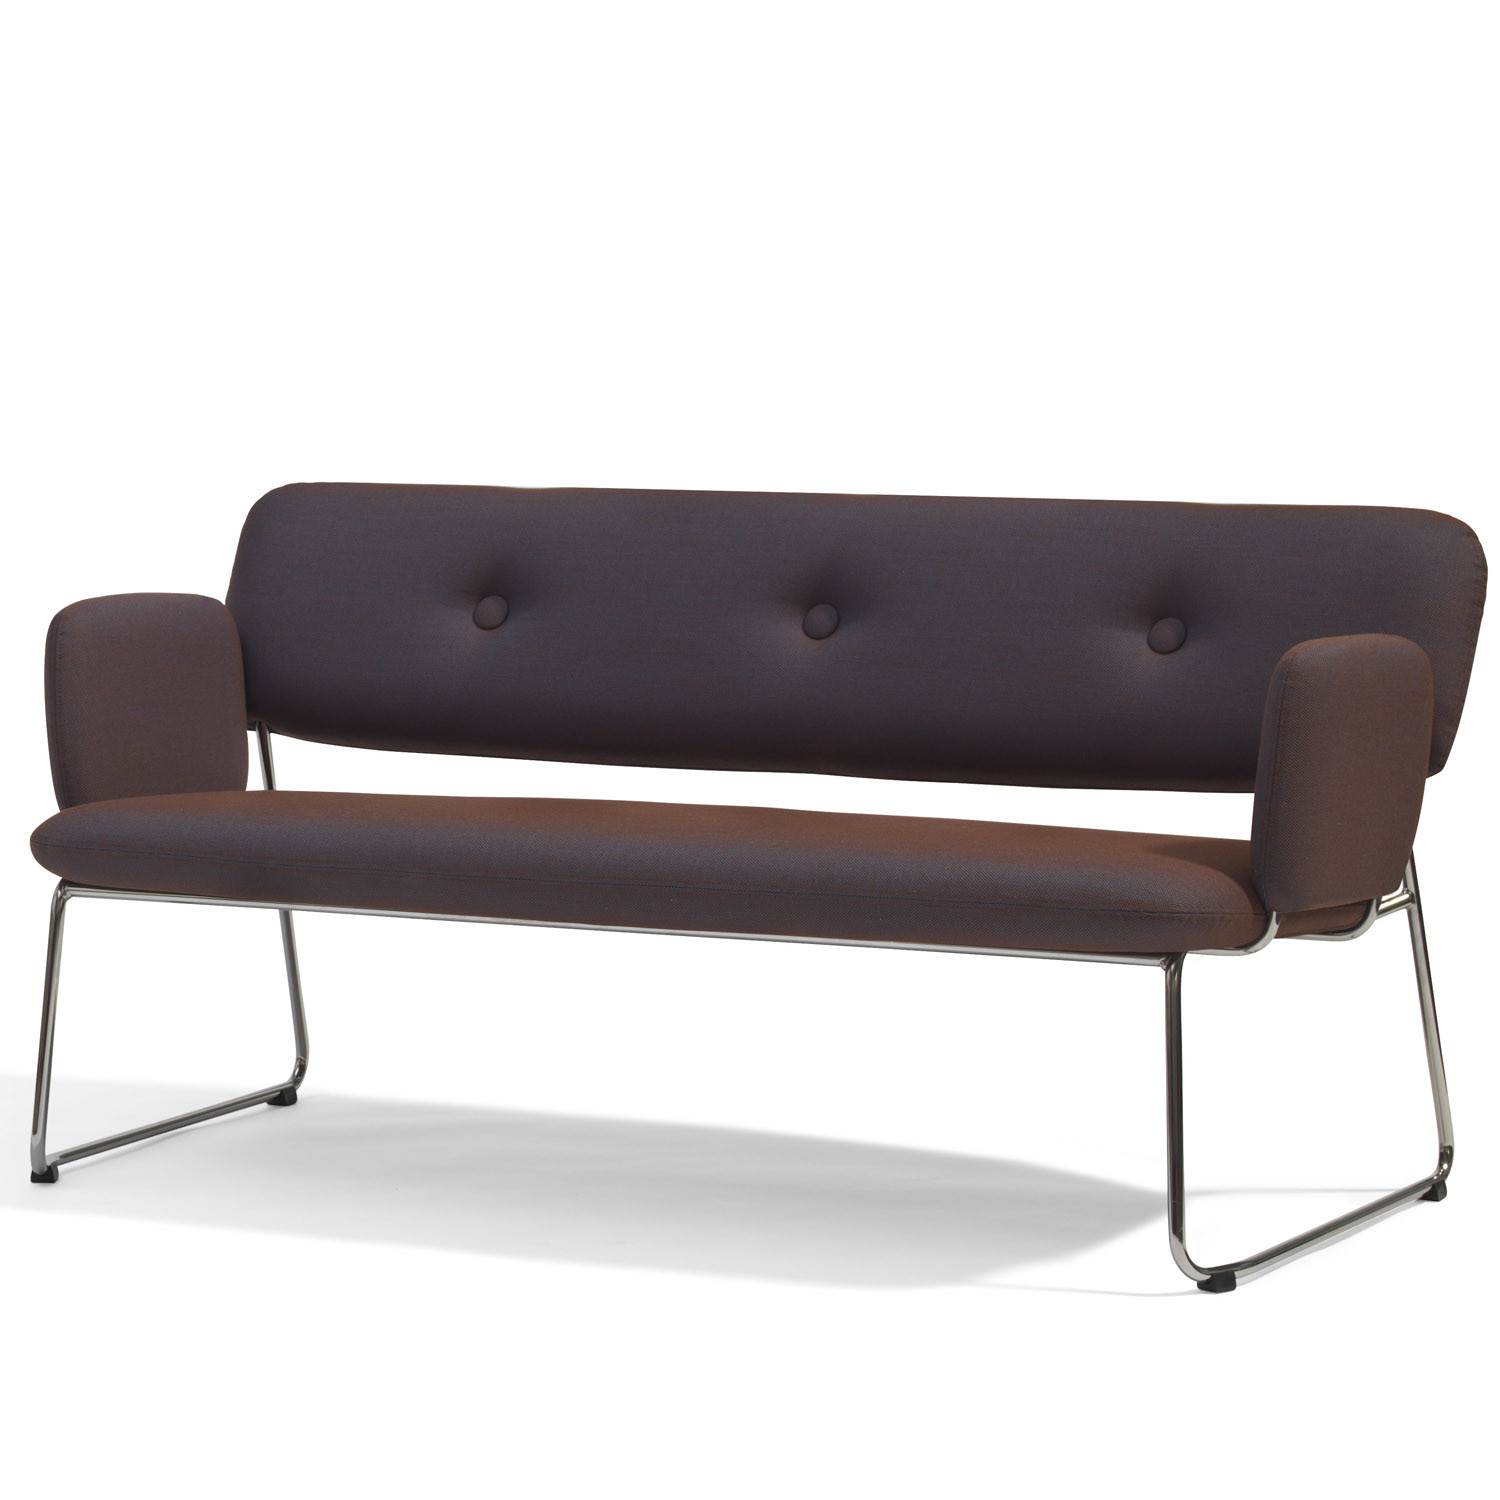 Dundra Bench S74AS